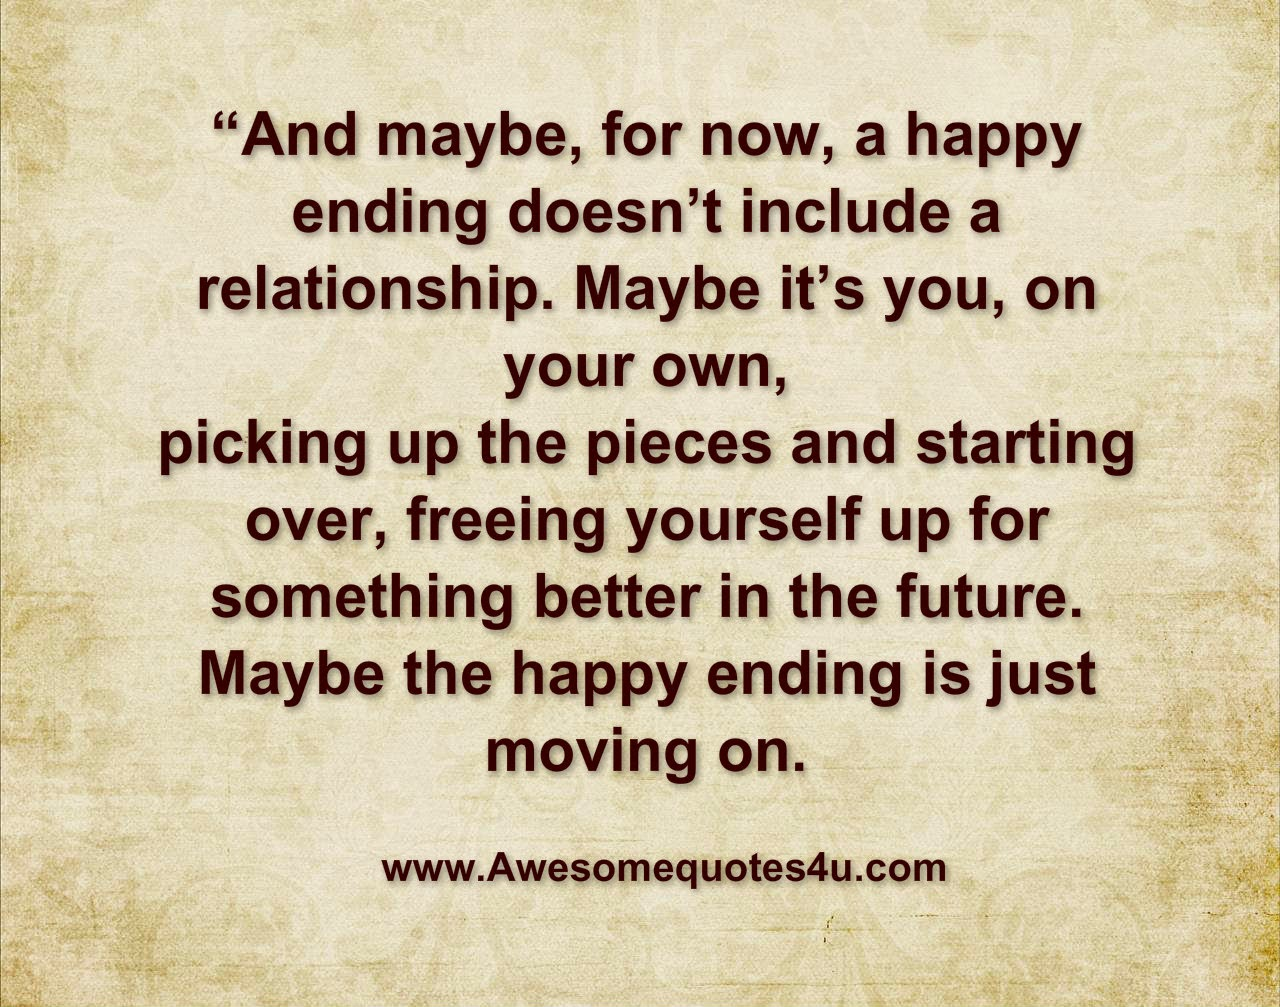 Quotes About Love Ending And Moving On : Awesome Quotes: Just Moving on .